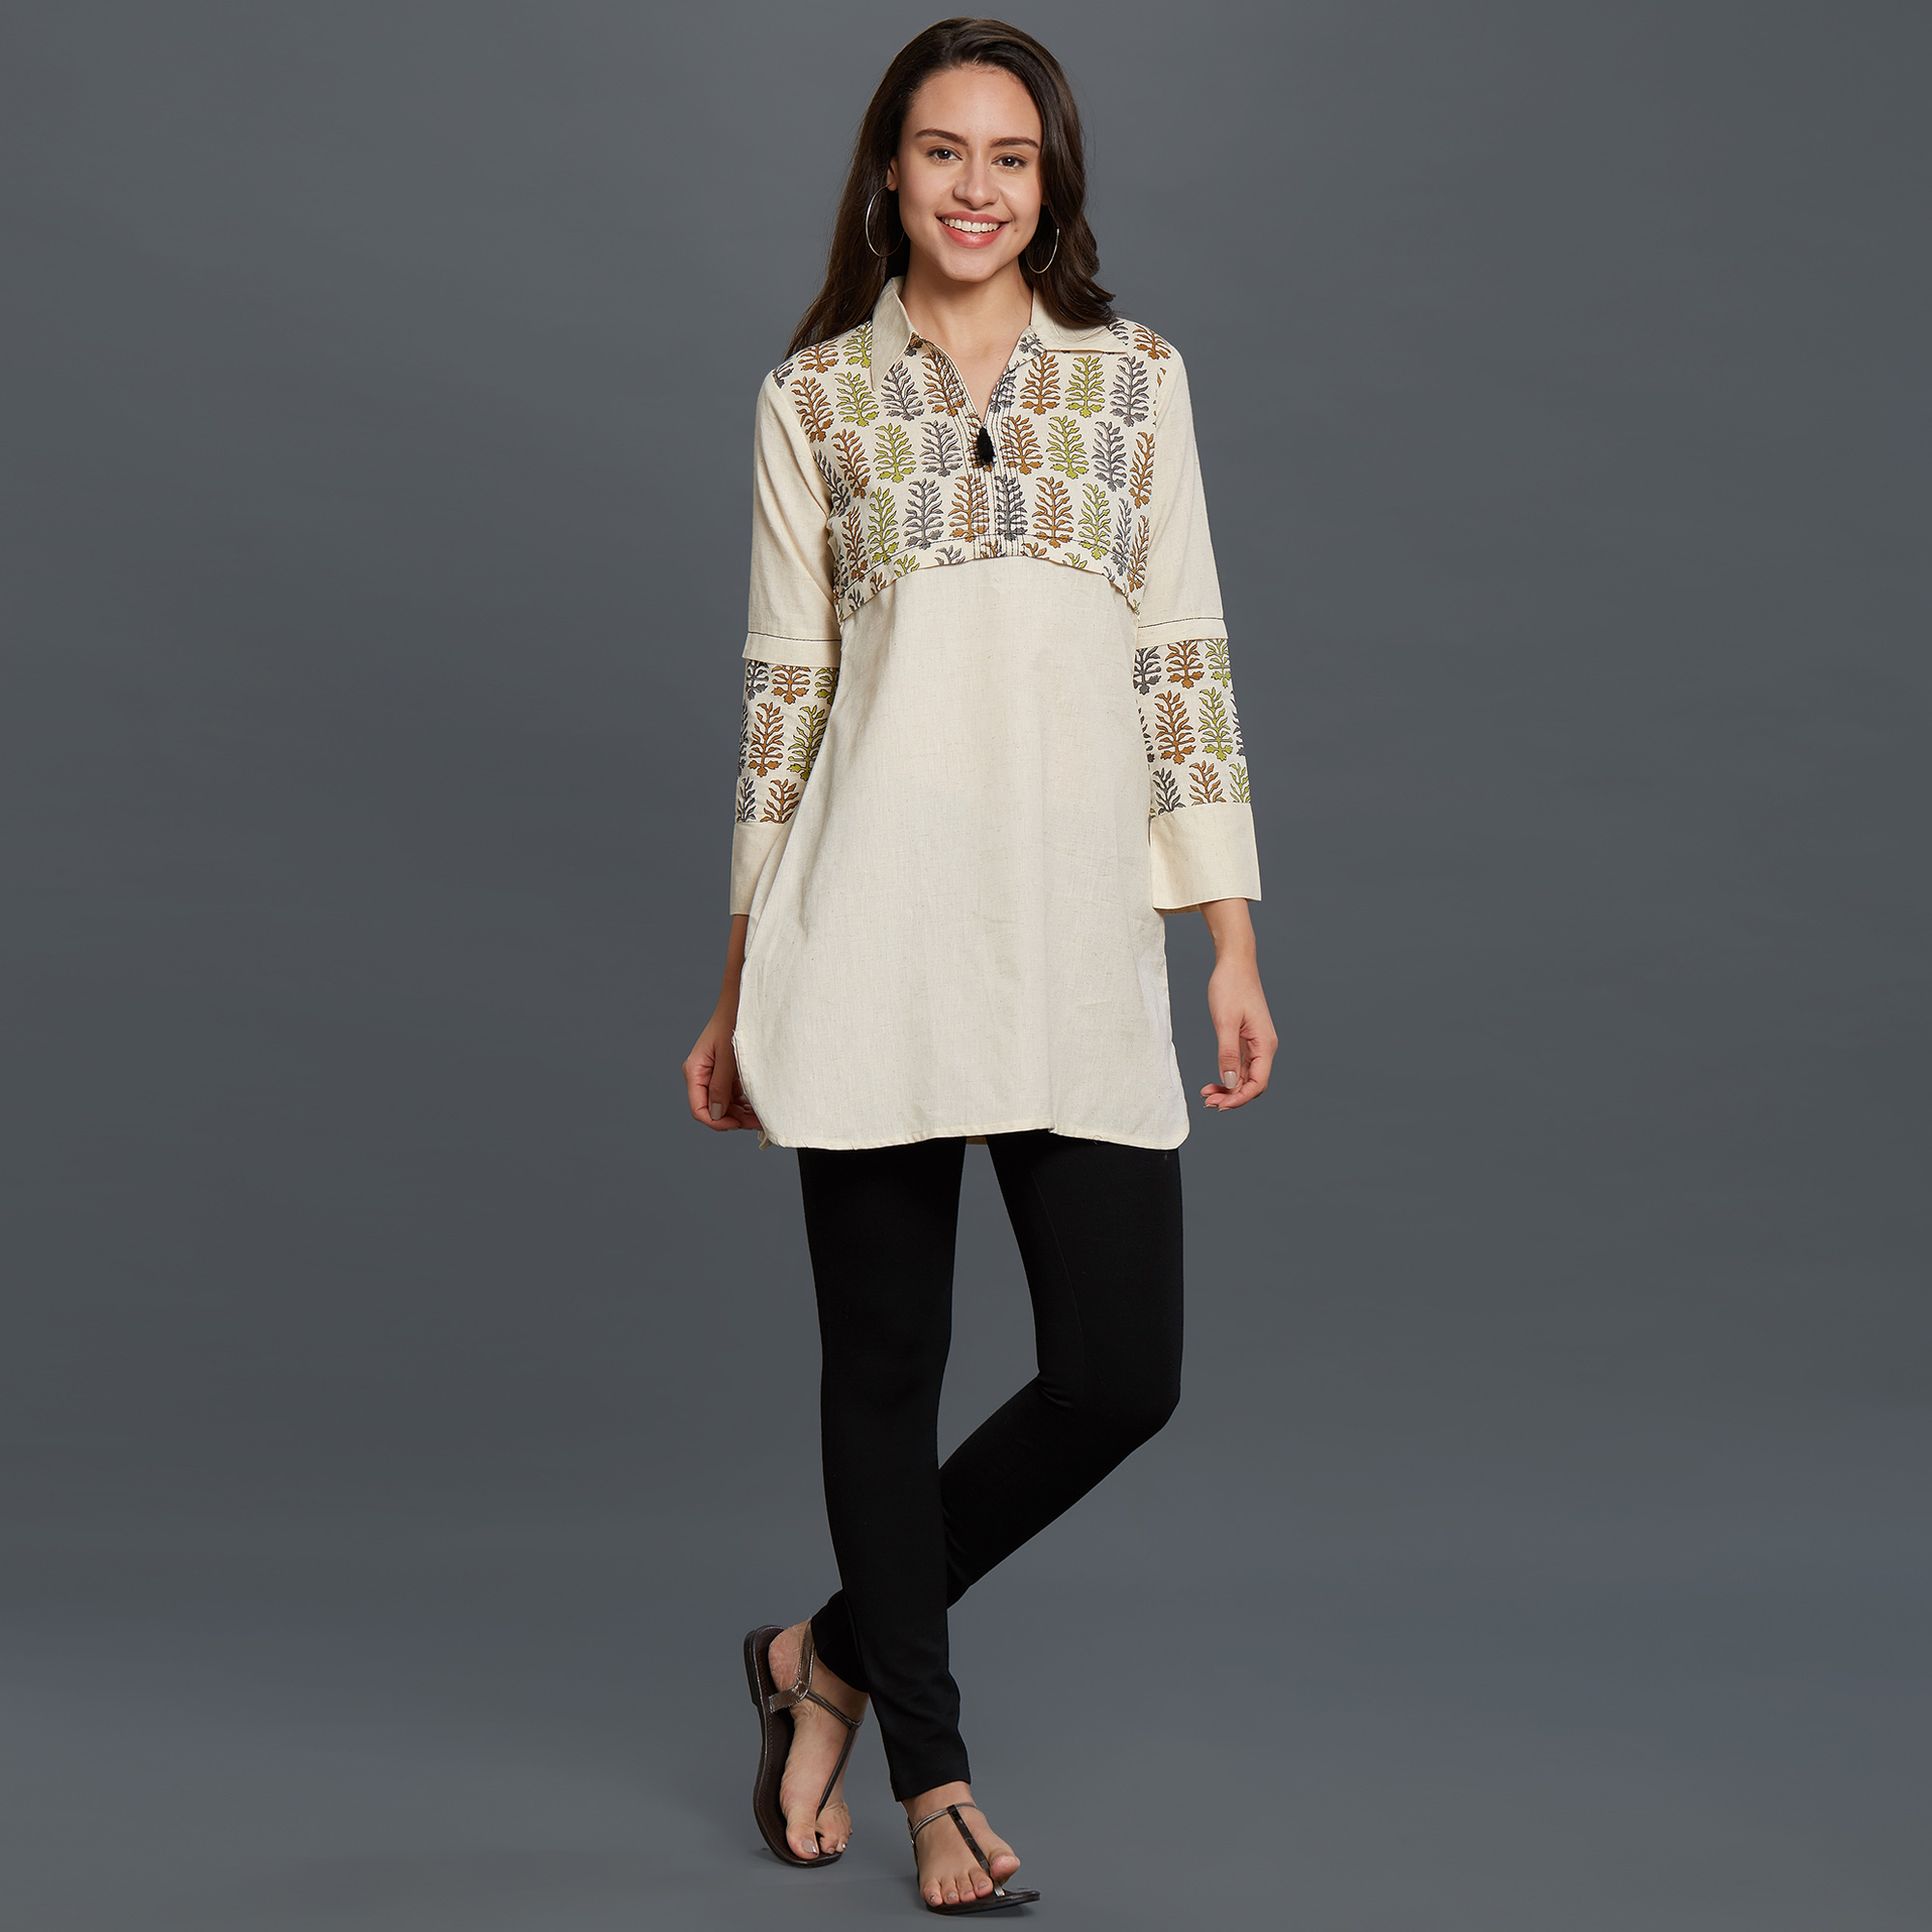 Adorable Off-White Colored Casual Printed Cotton Short Kurti